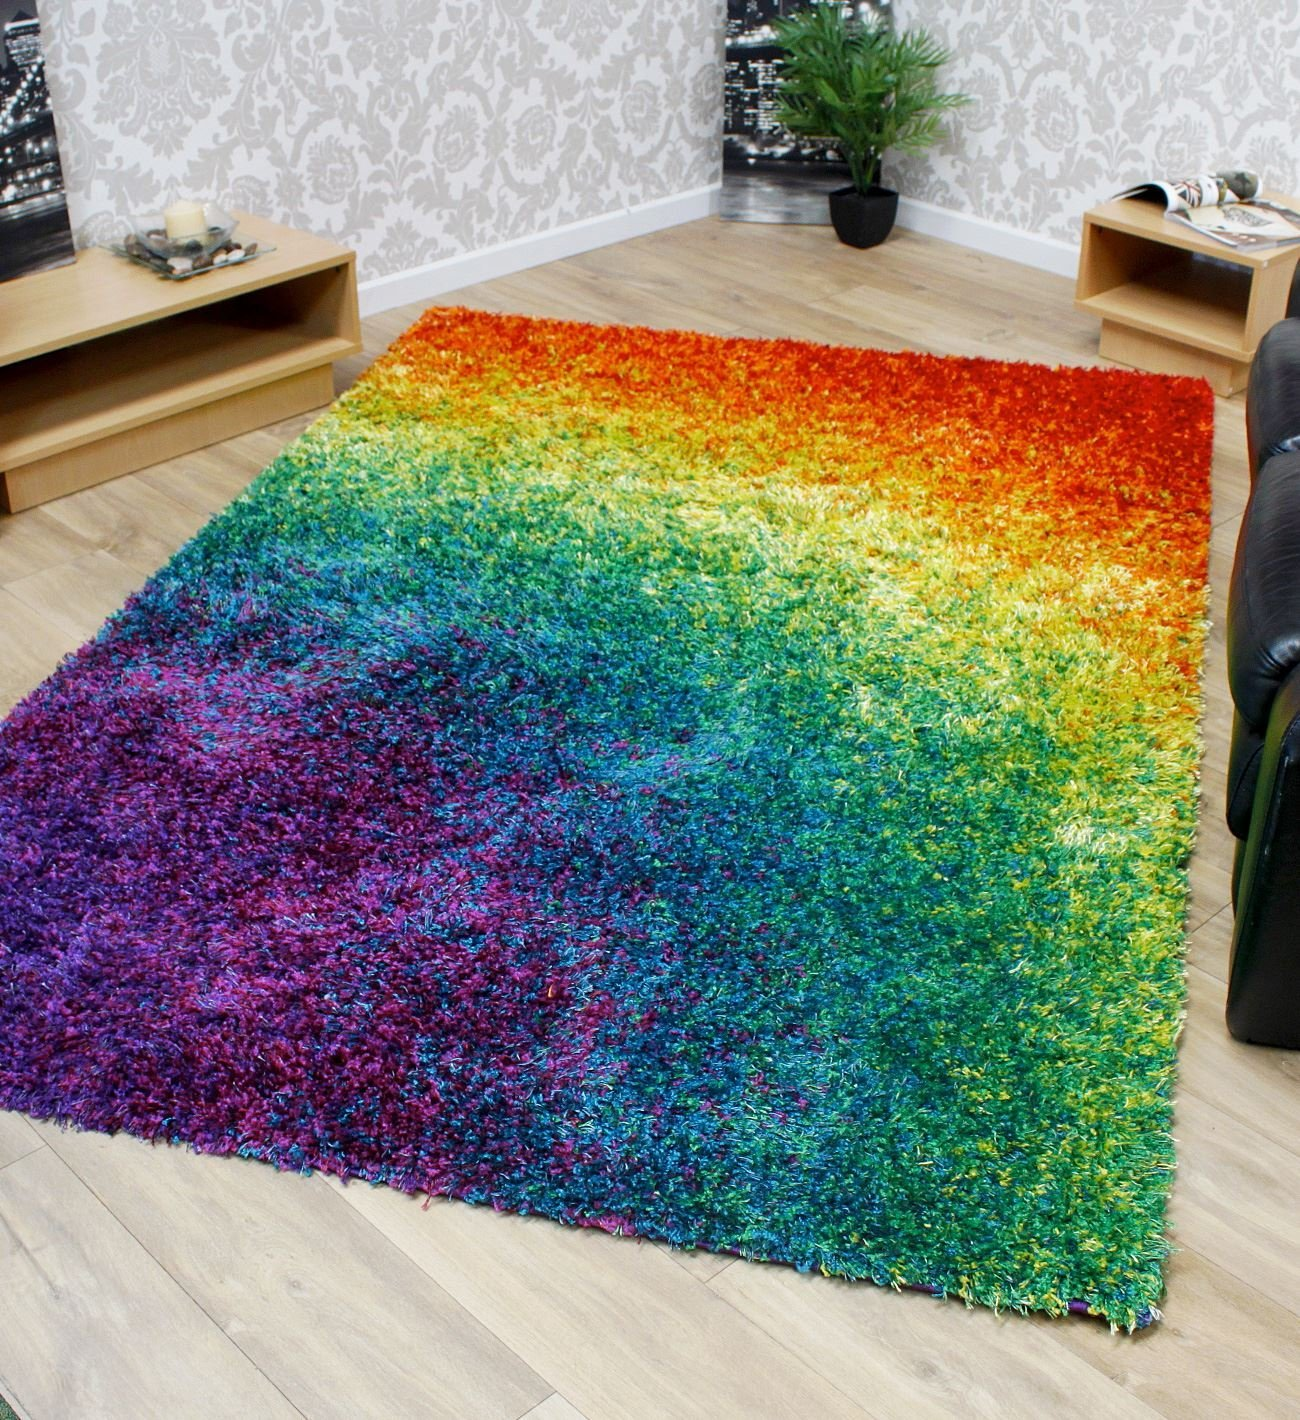 Funky Rainbow Colored Area Rugs - 6+ Vibrant Rugs You Have to See : Funk This House